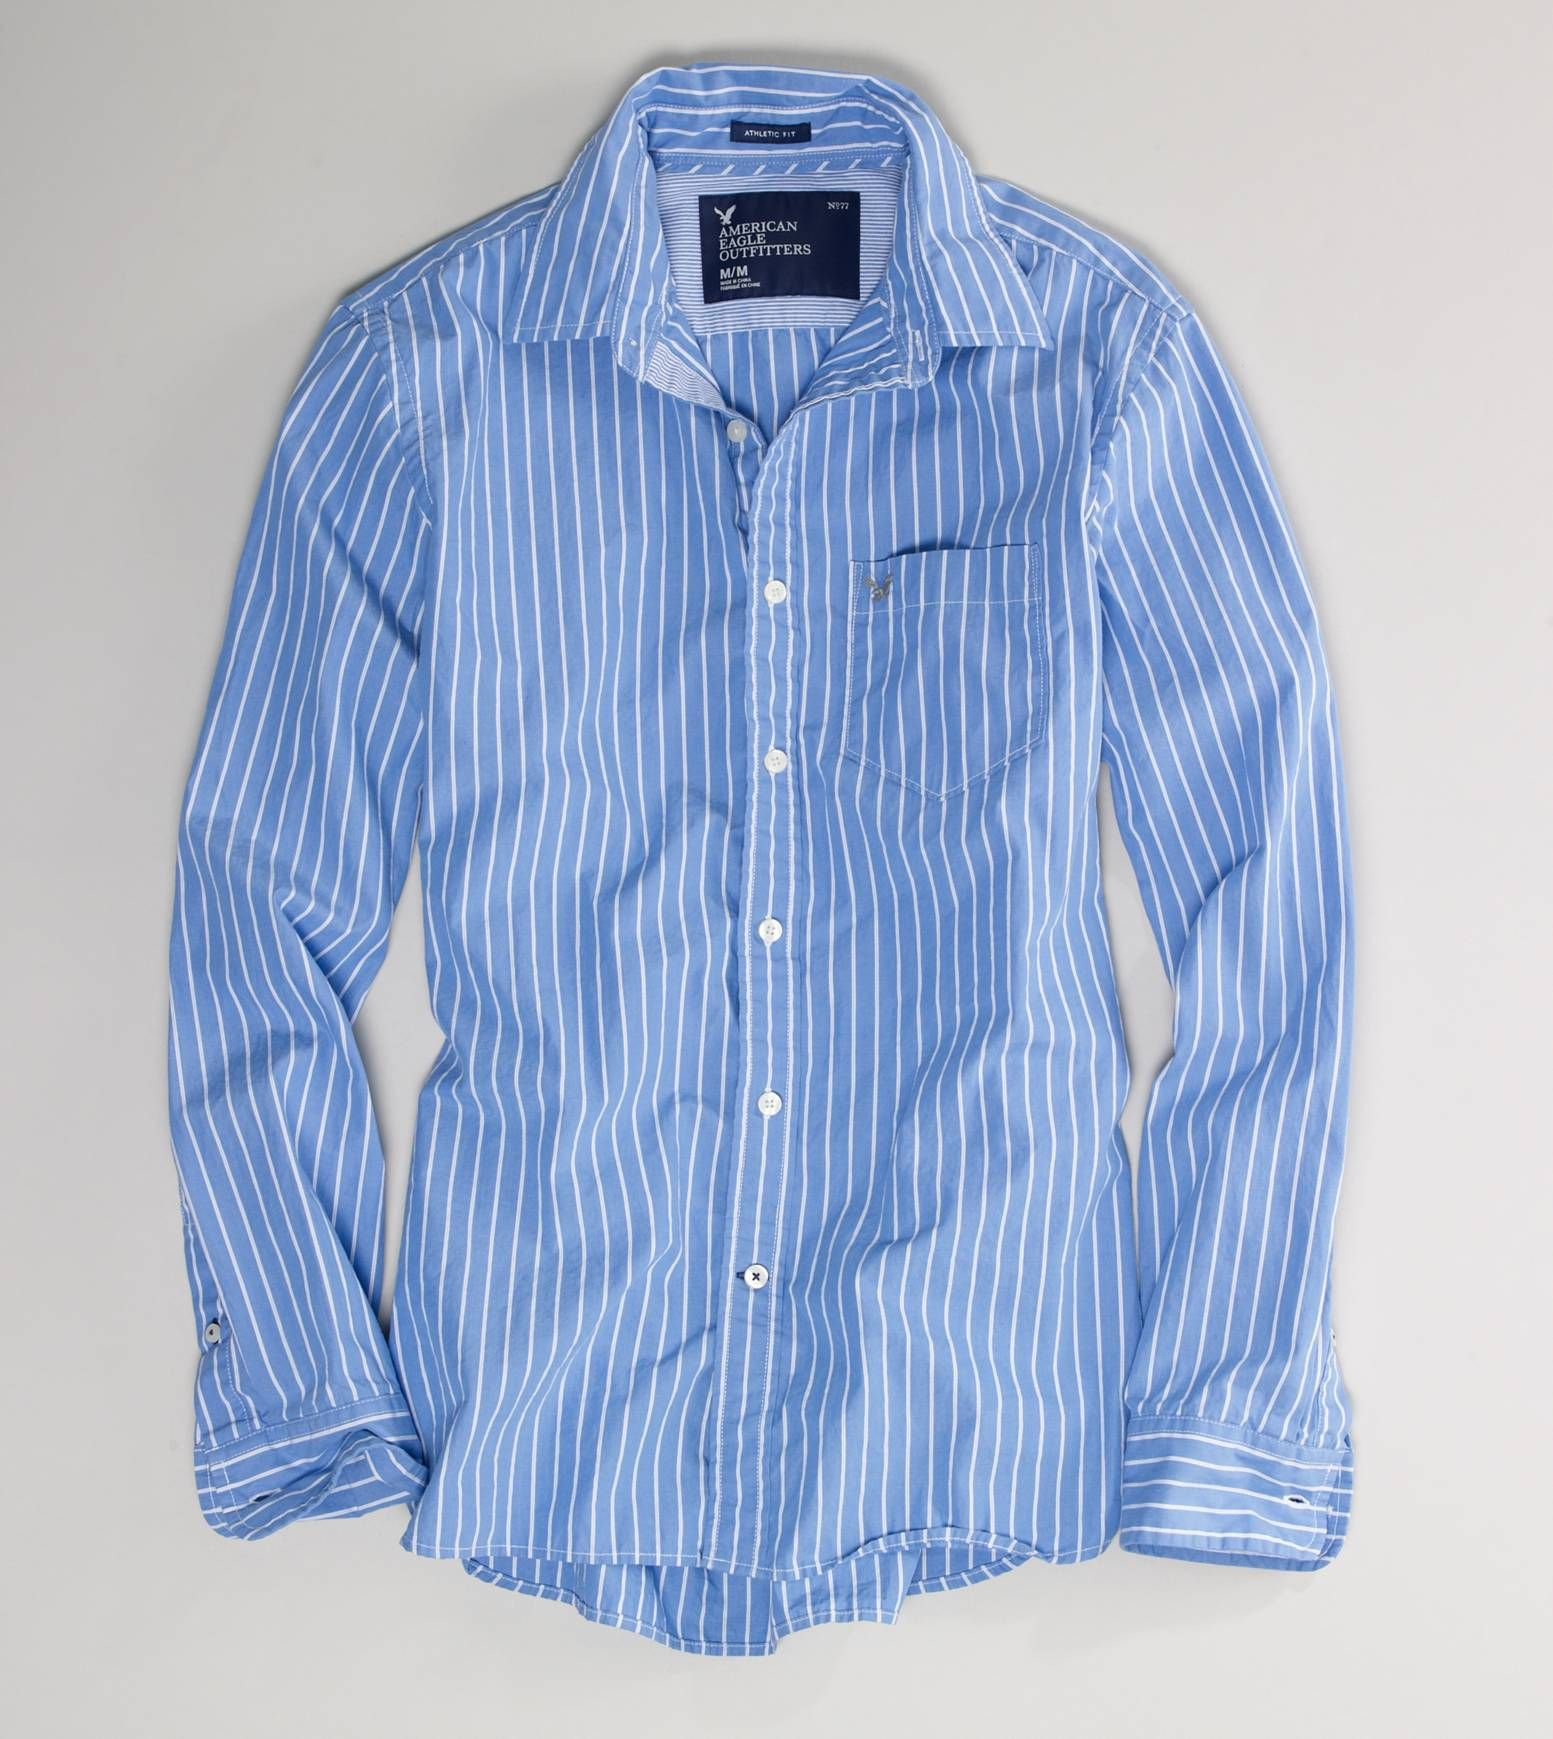 230a36a509 American Eagle I bought this same shirt for my son. He loves it ...